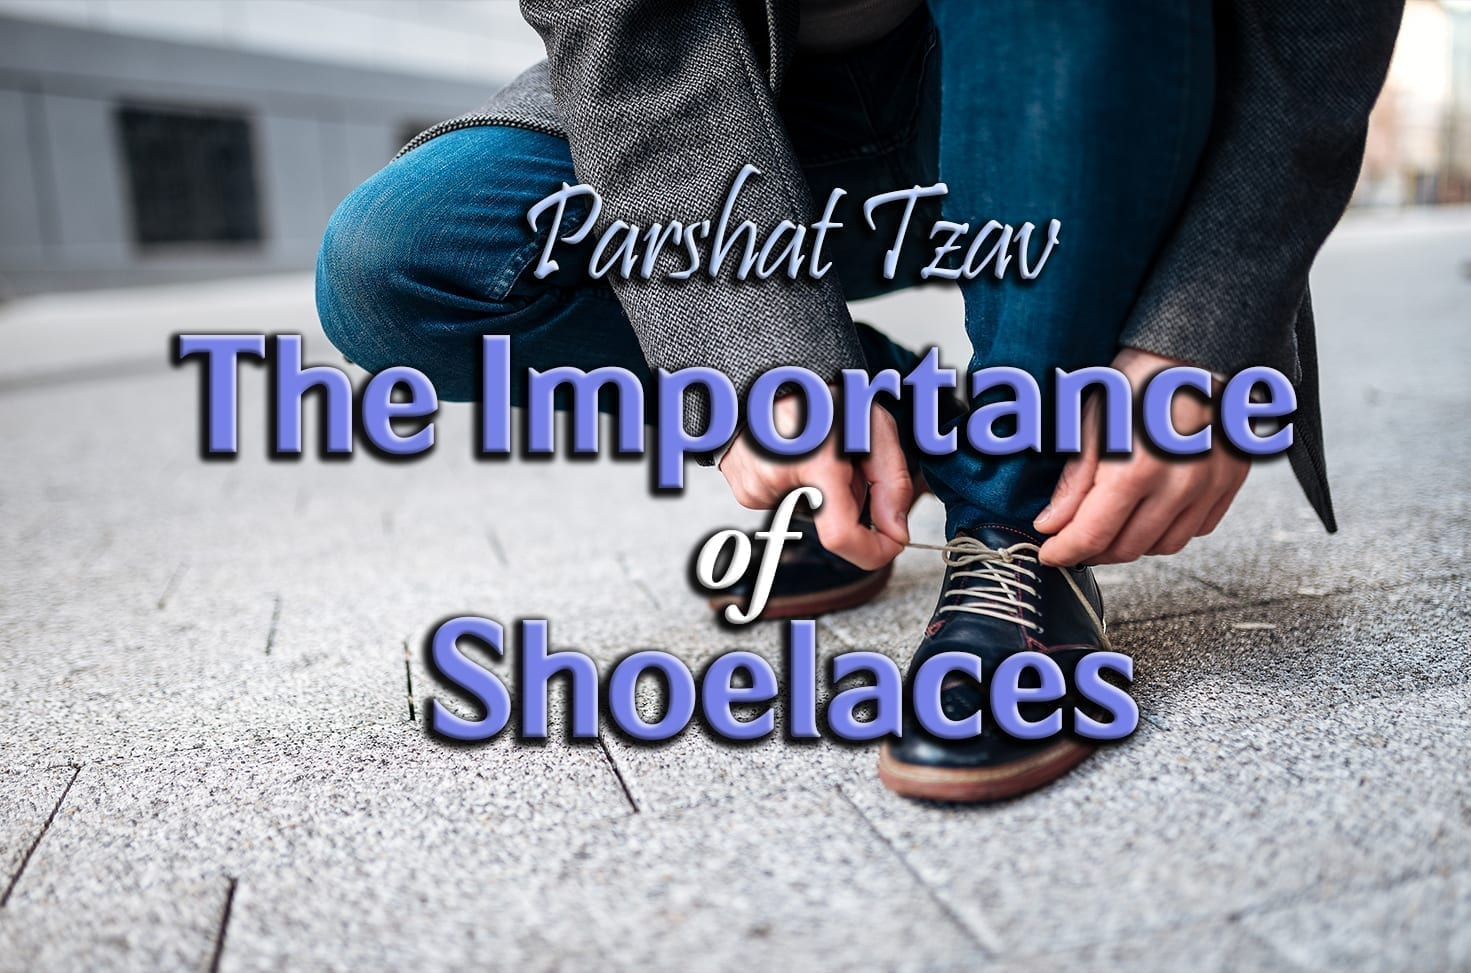 Photo of Parshat Tzav – The Importance of Shoelaces